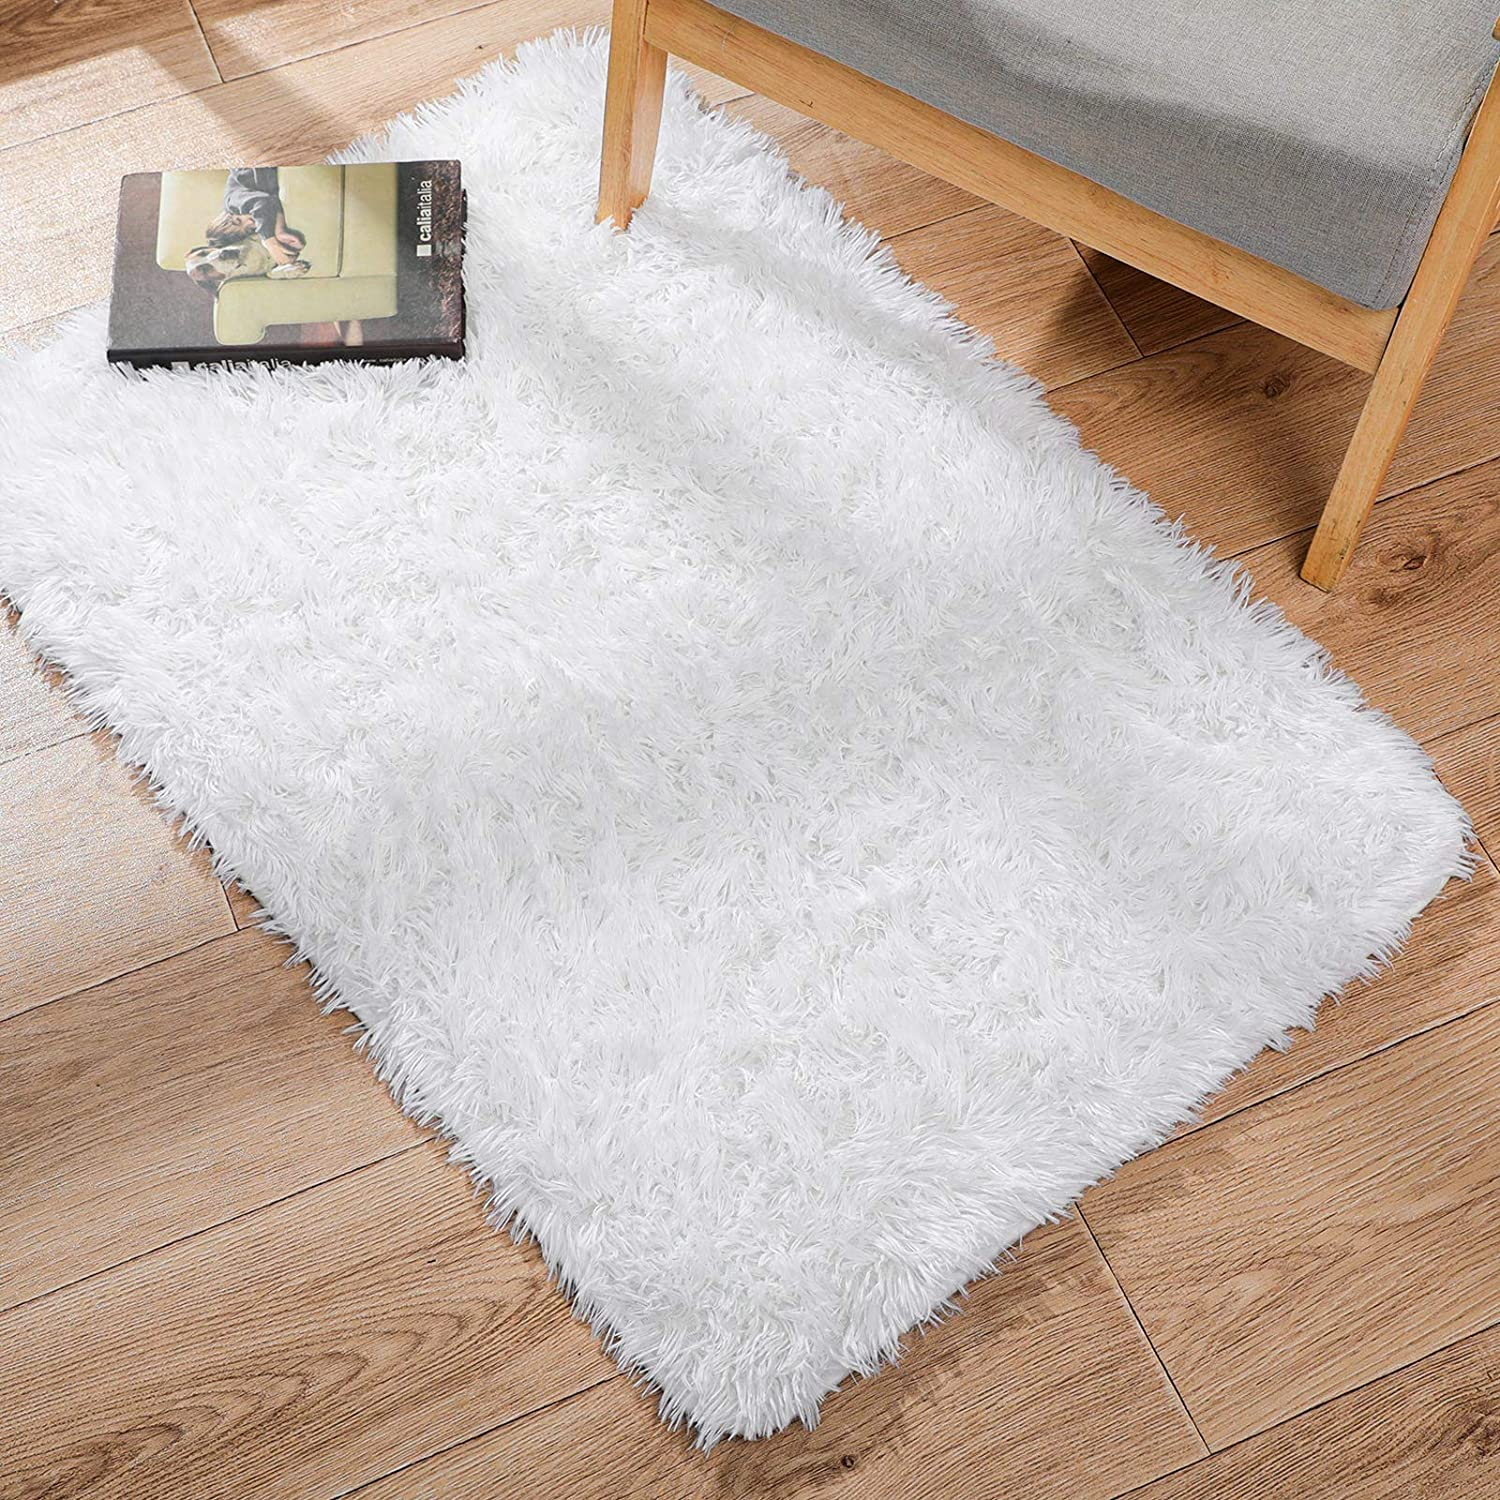 Ophanie Ultra Soft Fluffy Area Rugs for Bedroom, Luxury Shag Rug Faux Fur Non-Slip Floor Carpet for Kids Room, Baby Room, Girls Room, Play Room, and Nursery - Modern Home Decor, 2x3 Feet White